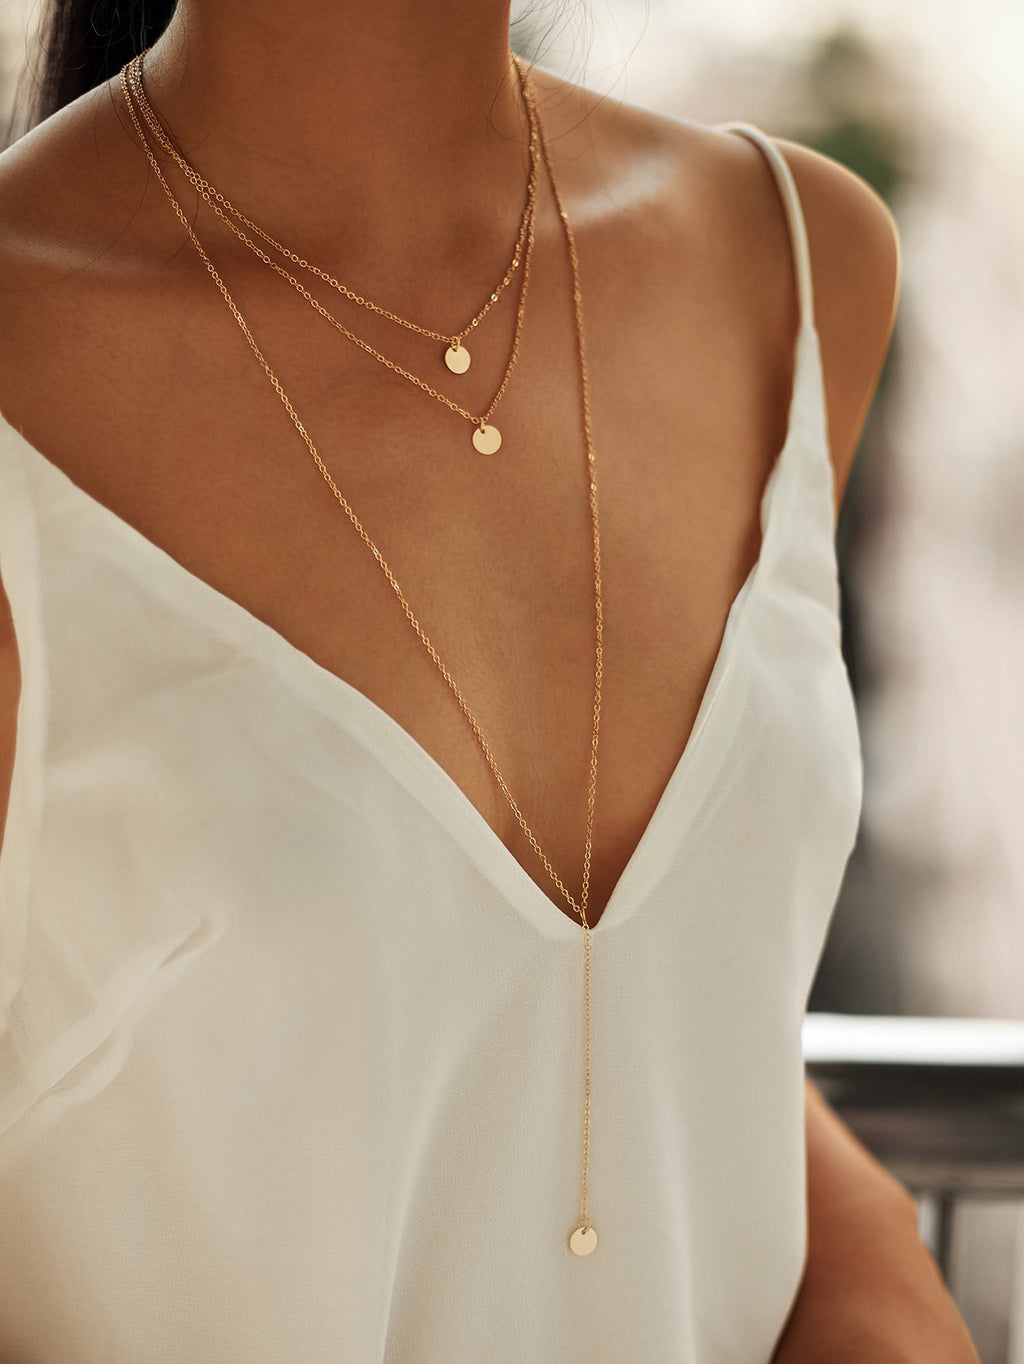 Georgie gold round layered necklace